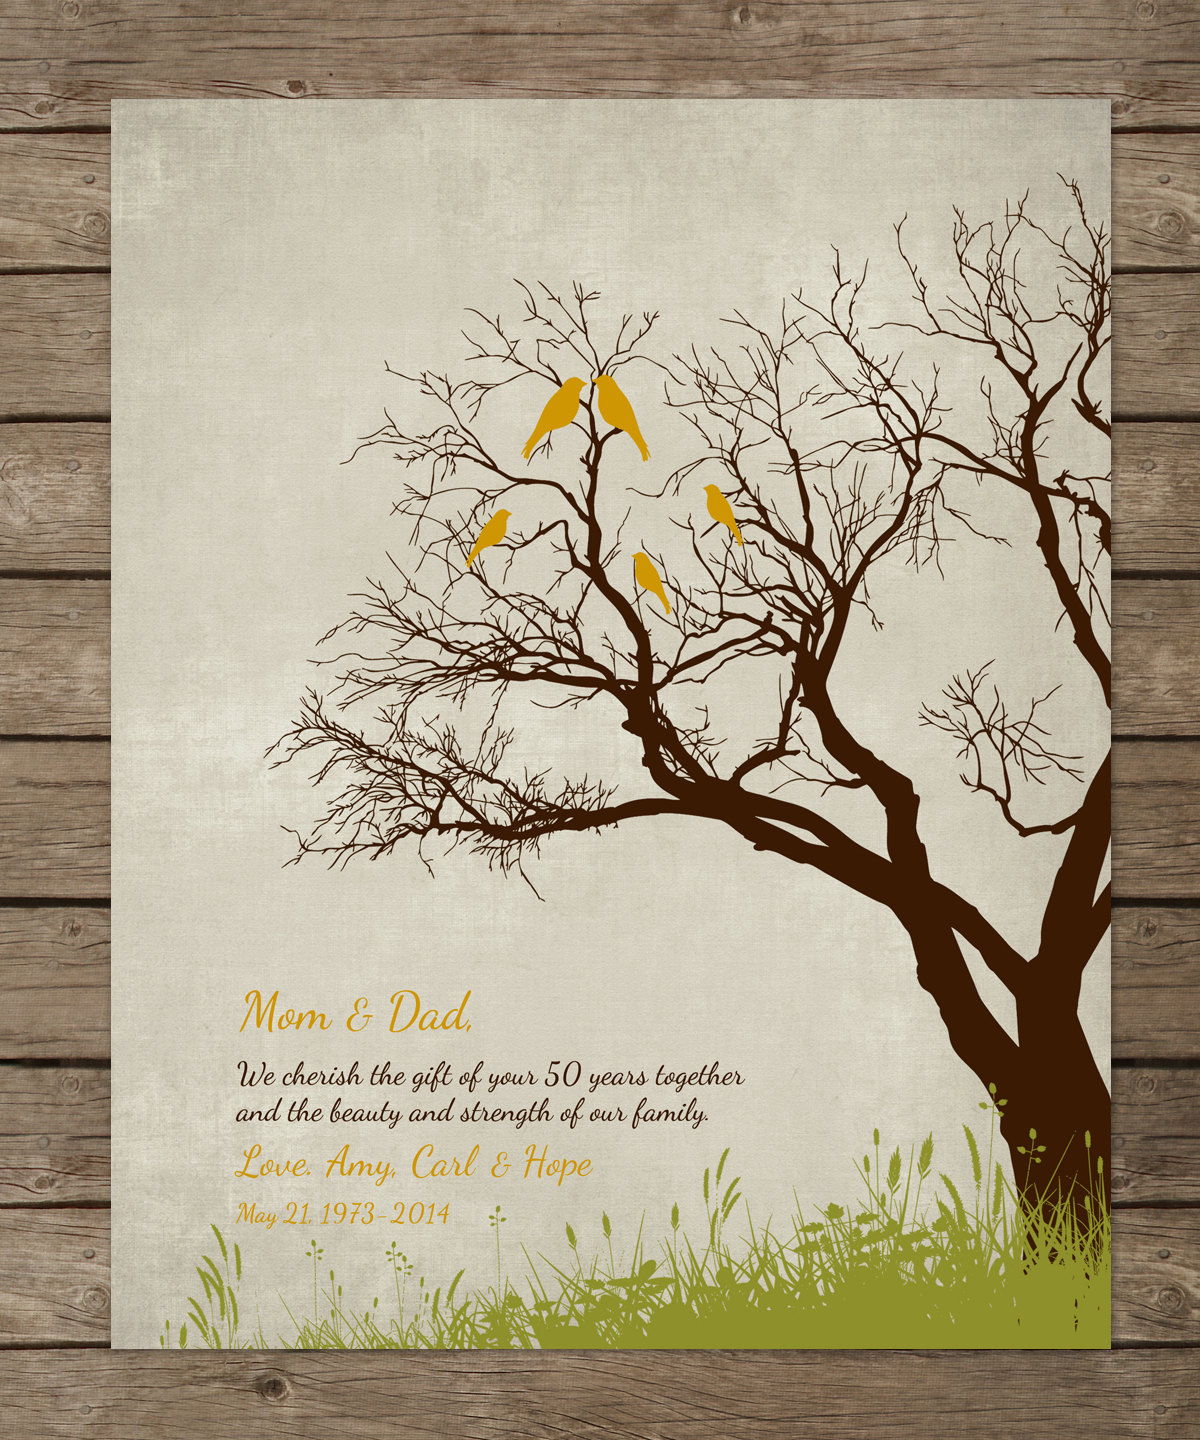 45 Wedding Anniversary Gift For Parents: 50th Wedding Anniversary Tree Gift Anniversary Gift For